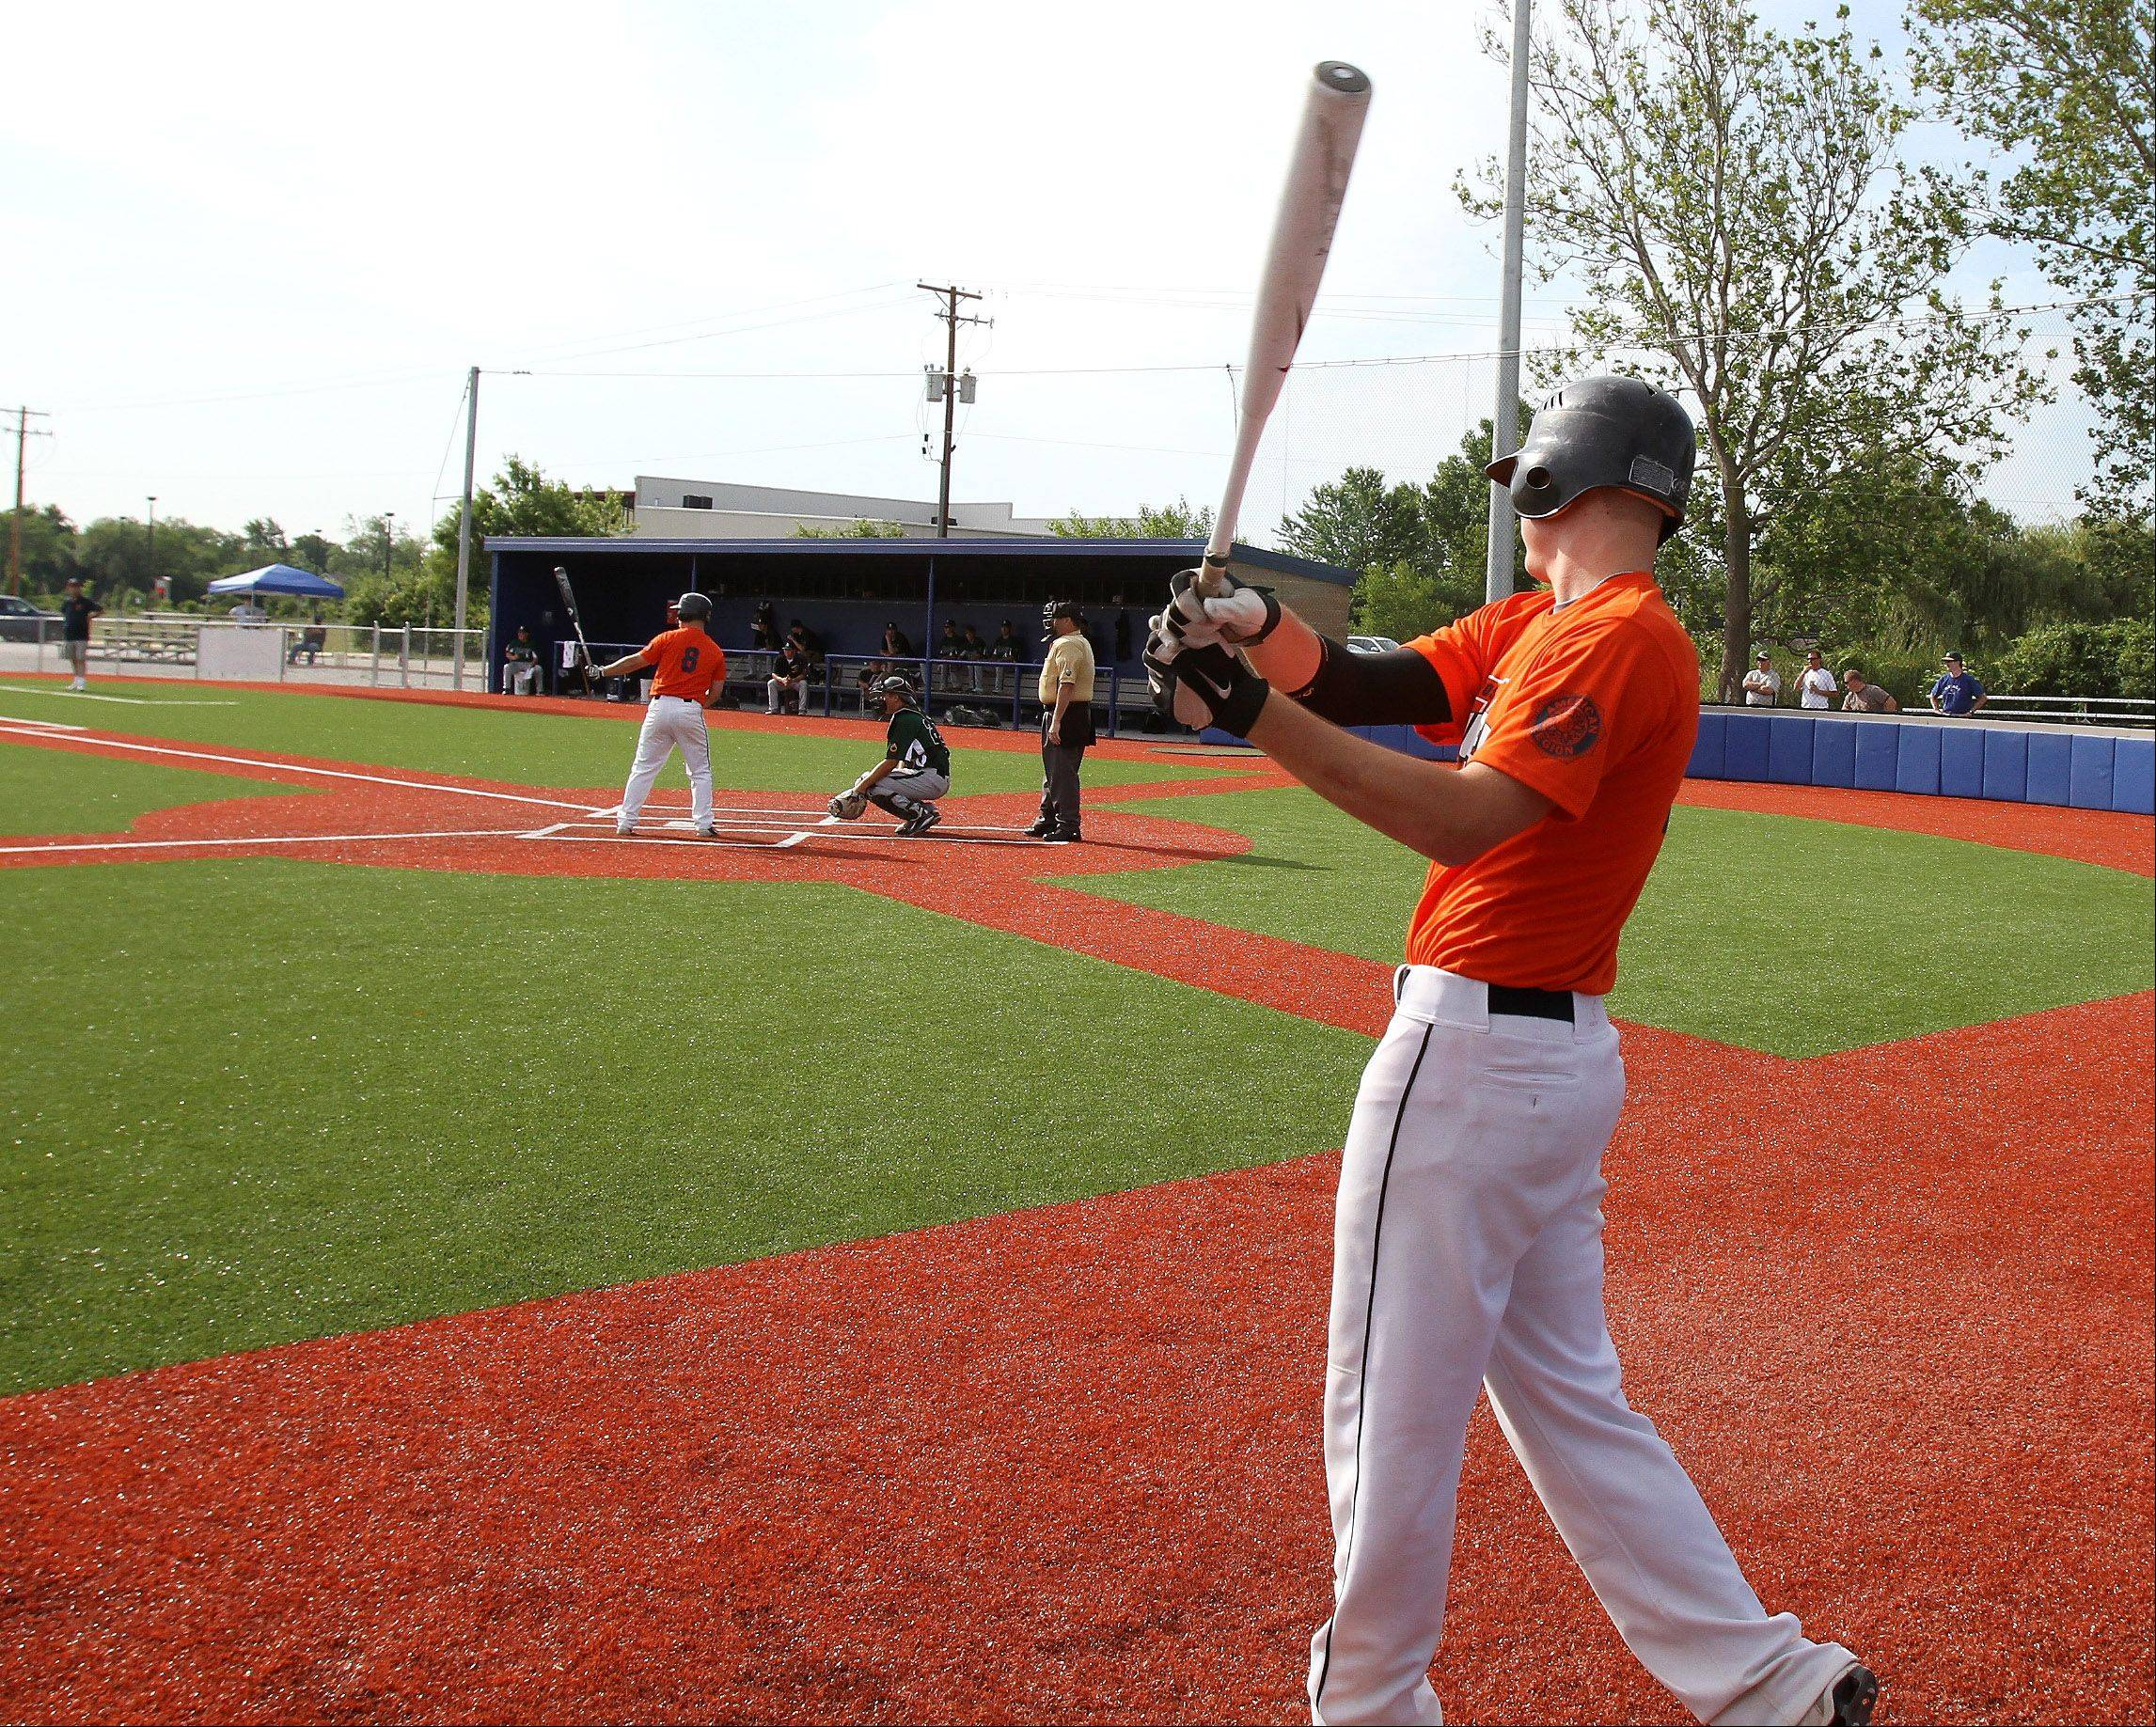 Wheaton College will be able to rent out its baseball field in Carol Stream to other colleges, village officials said this week.